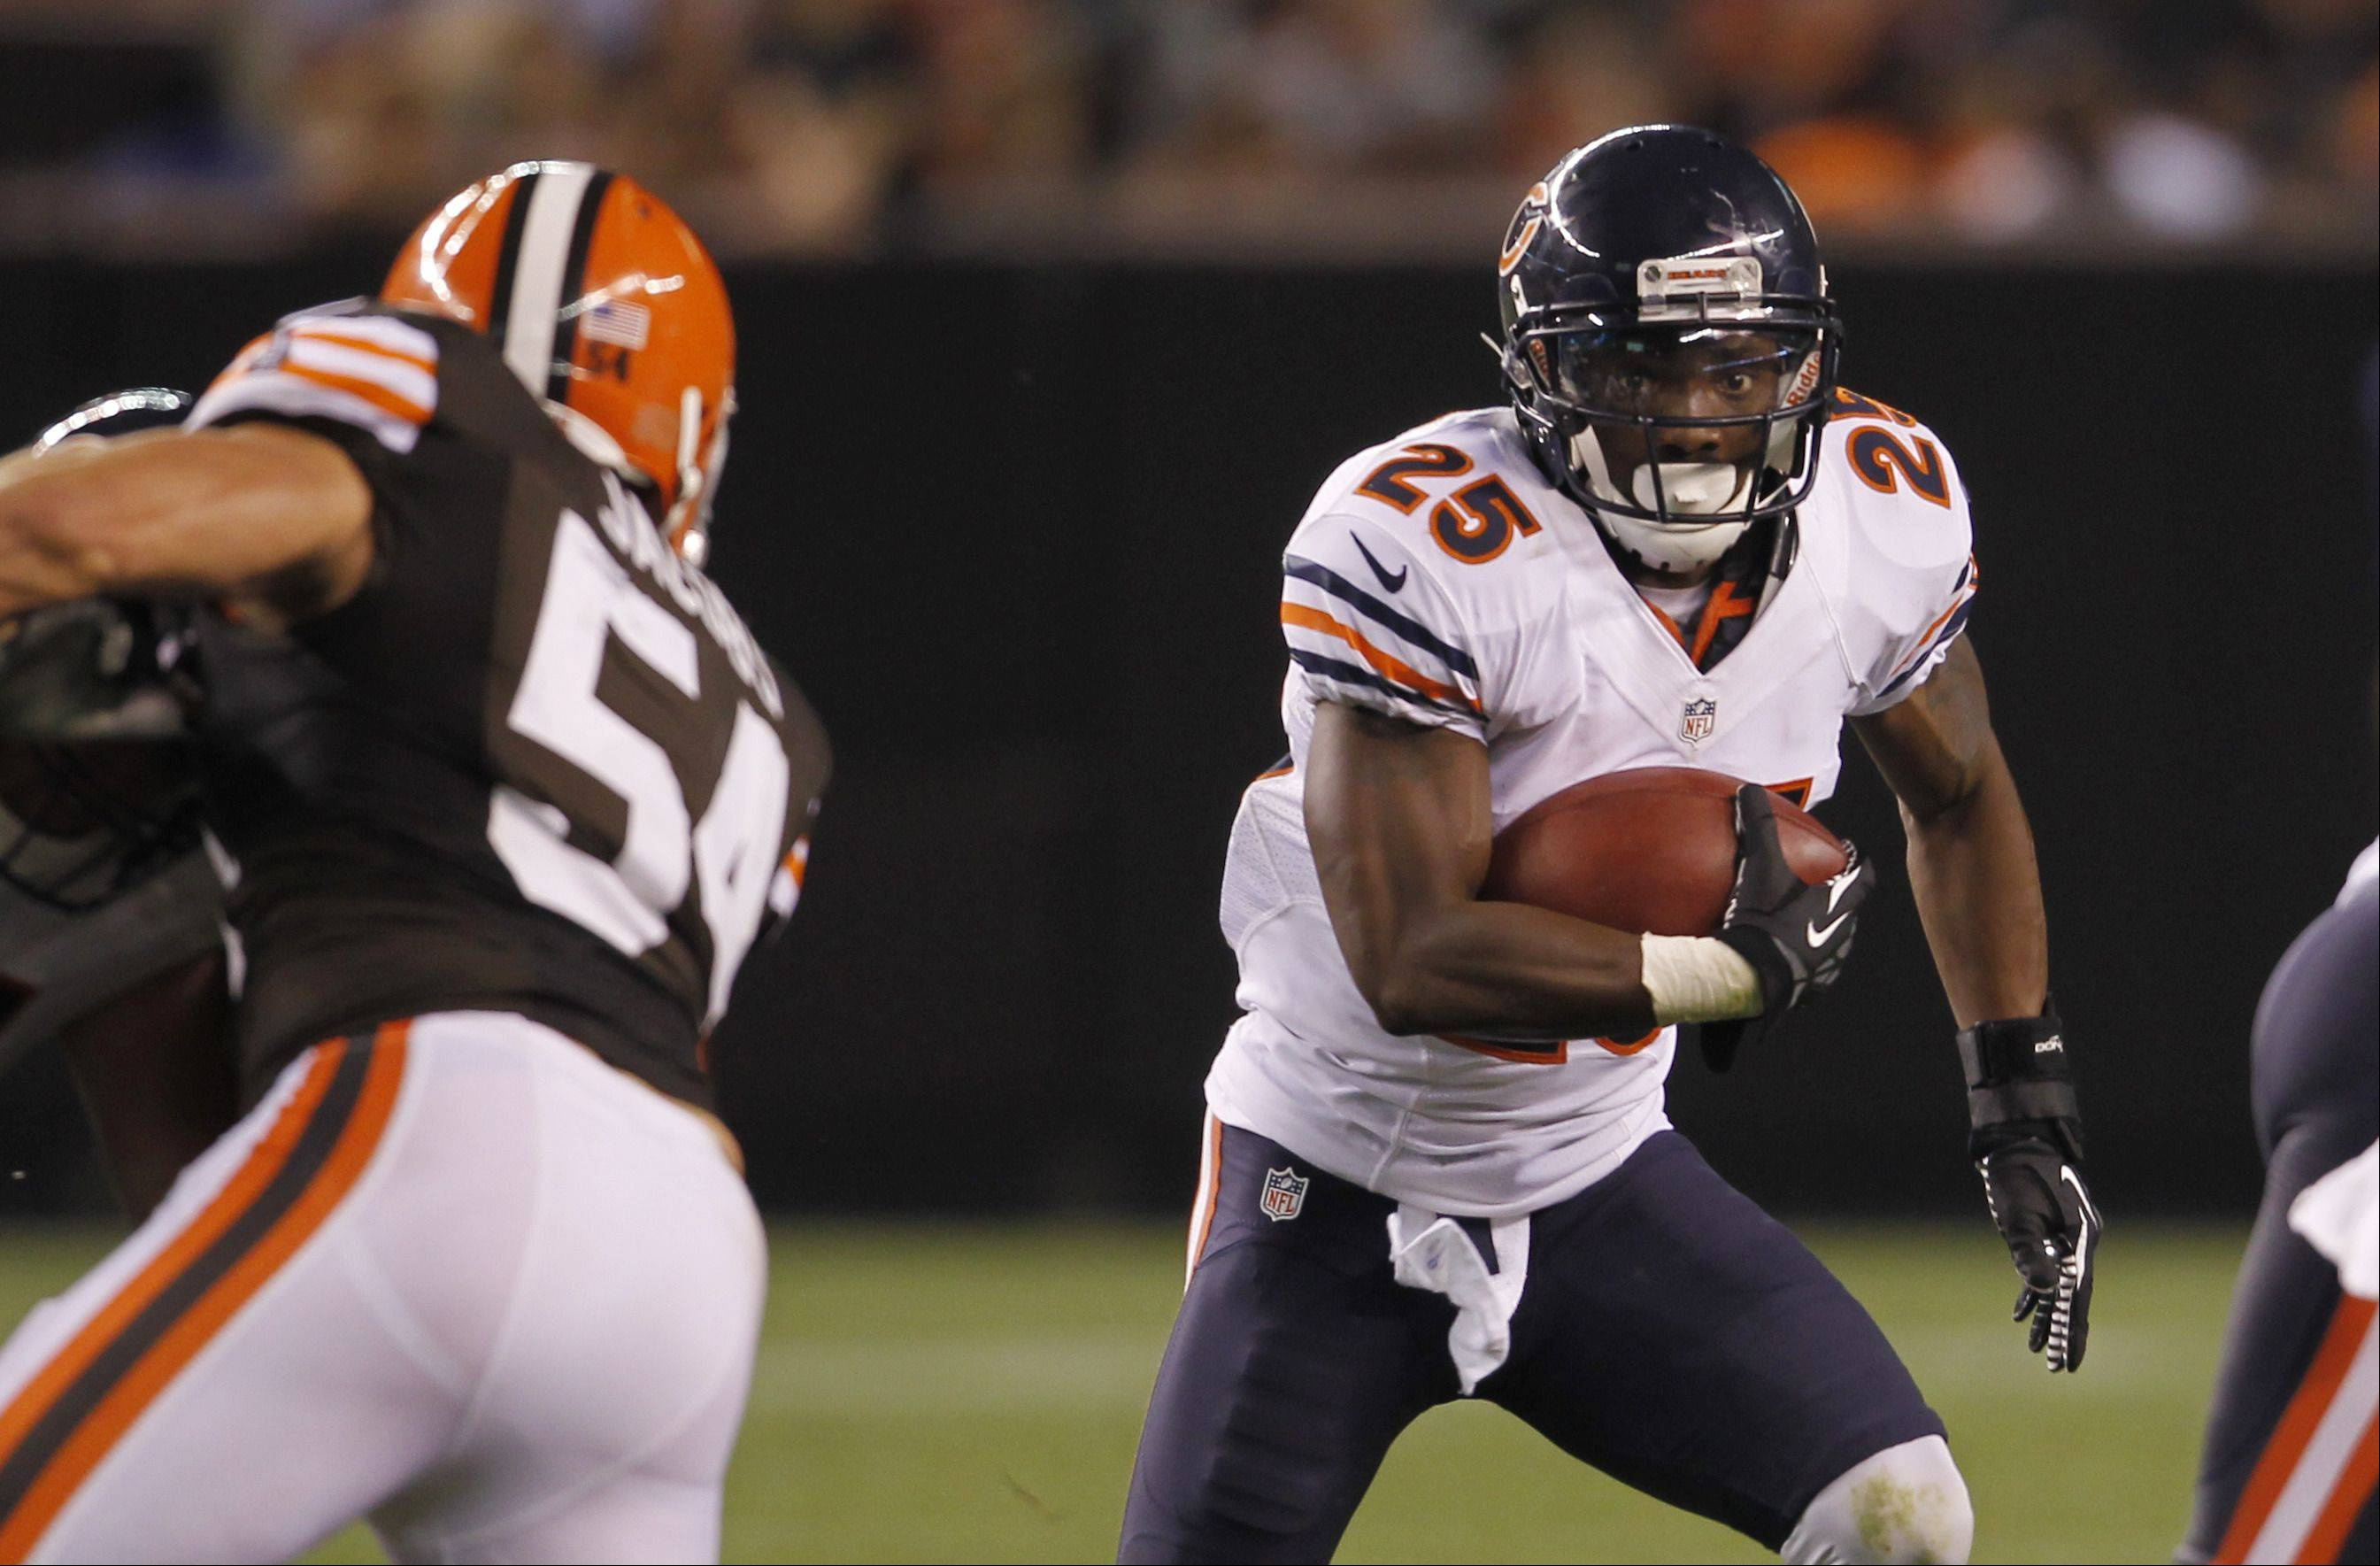 Armando Allen (25) runs against the Cleveland Browns in the third quarter of a preseason game last year. Allen is trying to hold off rookie Michael Ford for a spot on this year's Bears roster.